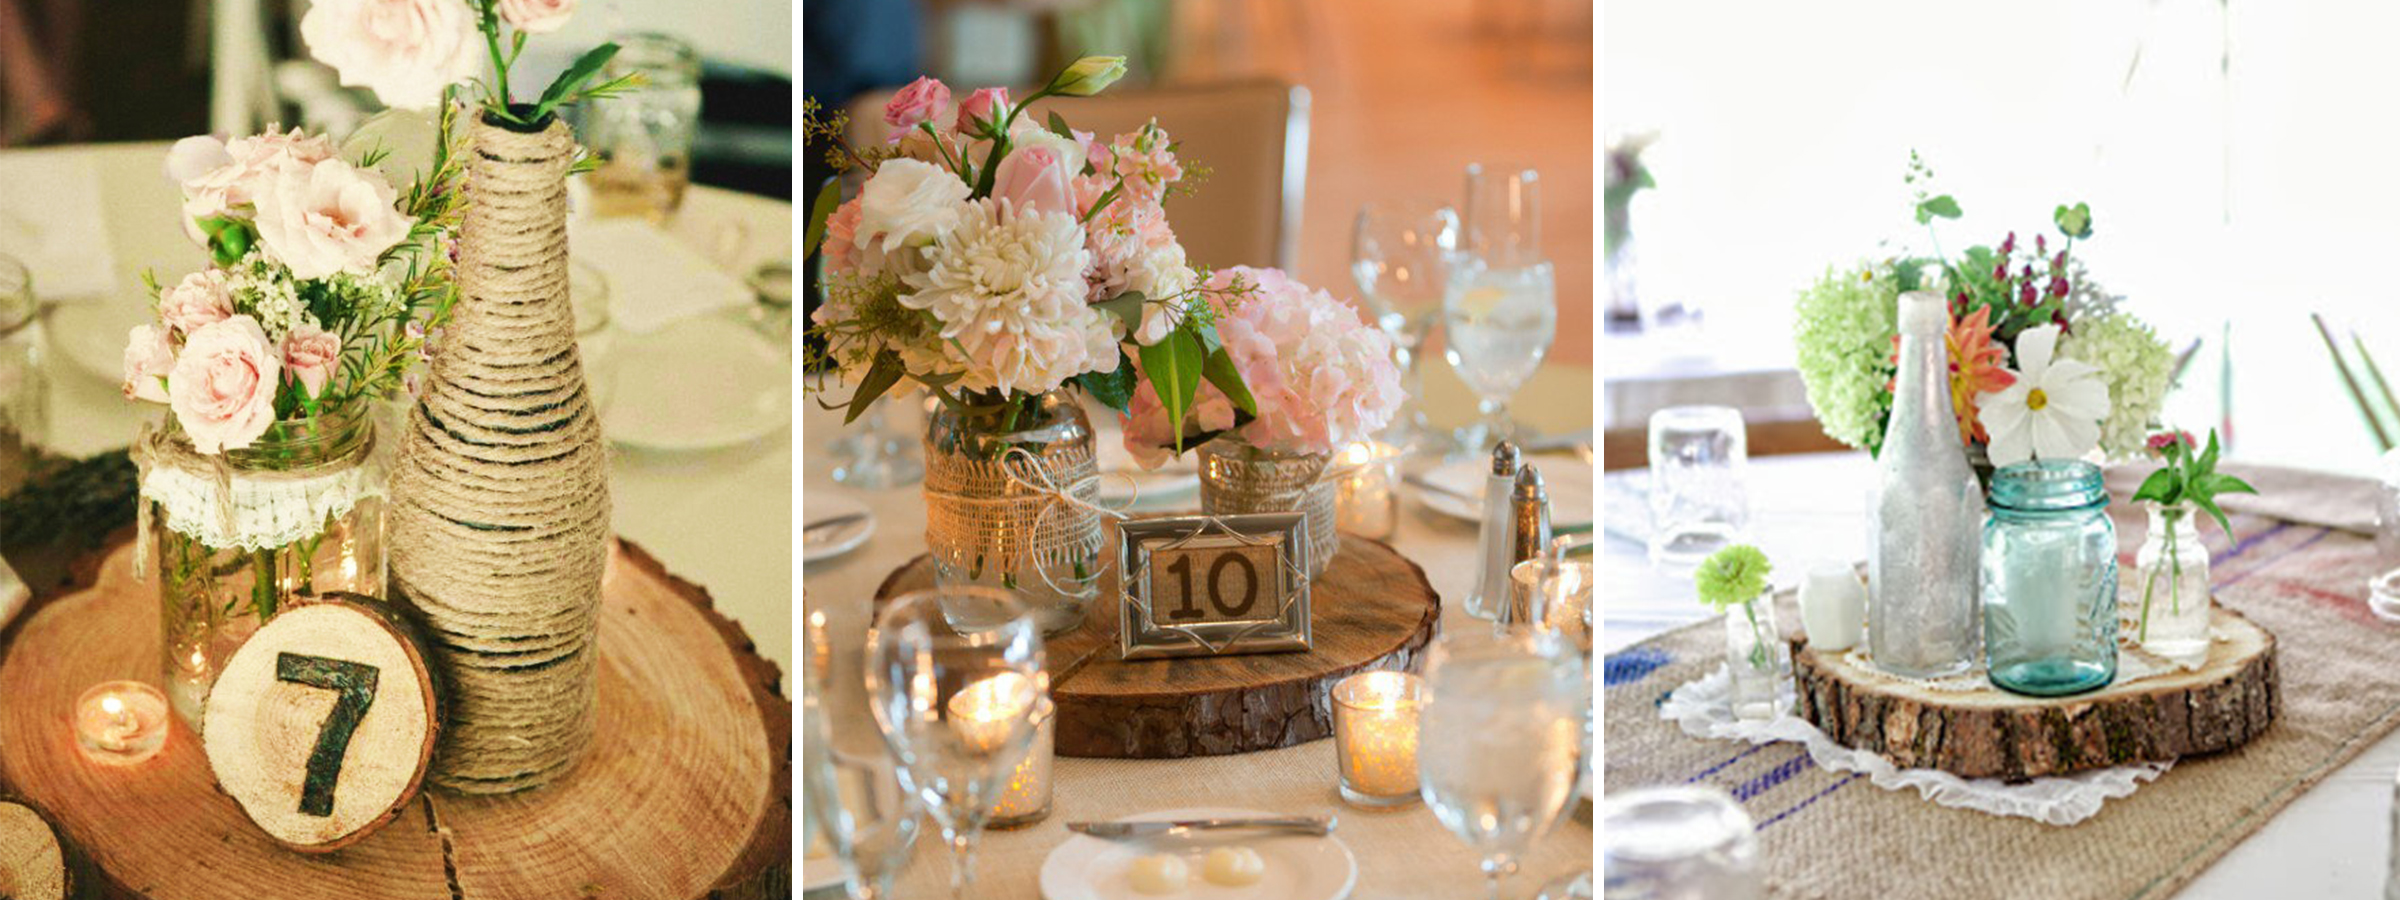 Do It Yourself Wedding Decorations From Pinterest